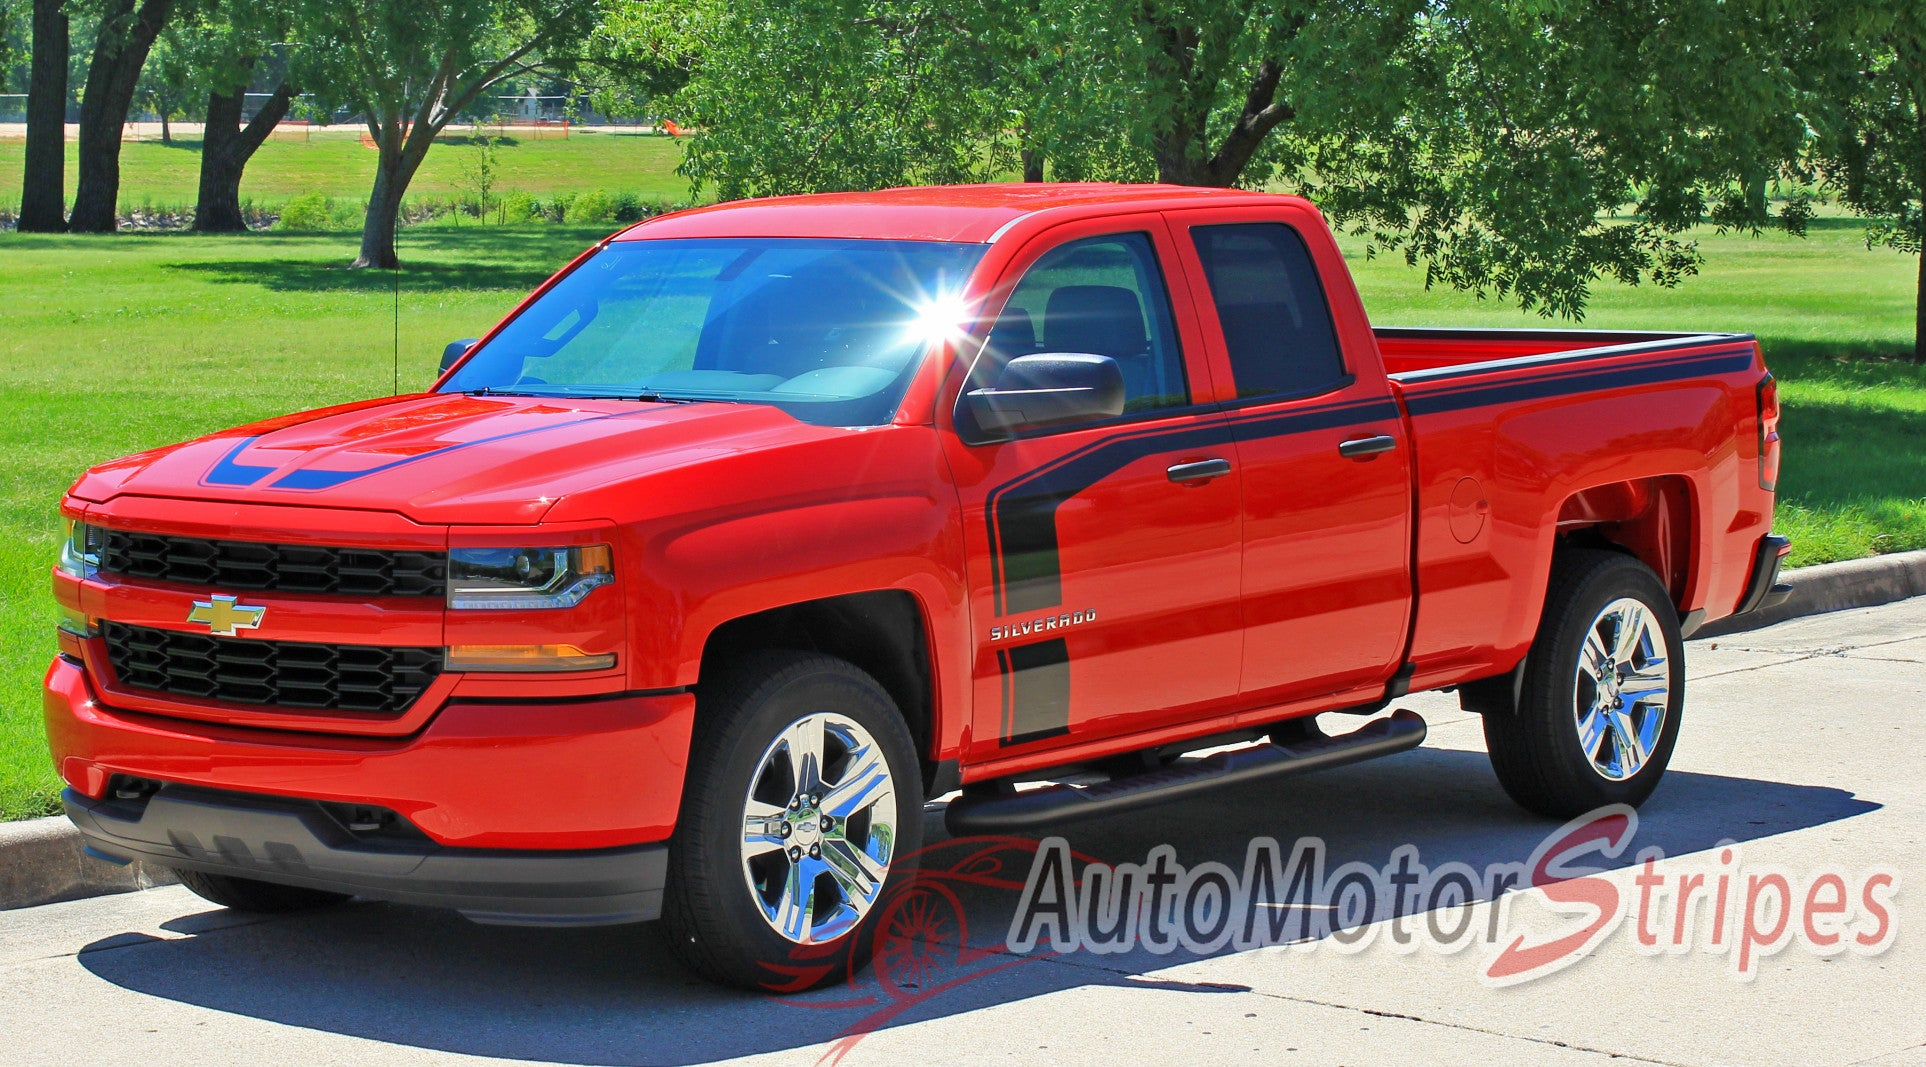 2016 2017 chevy silverado flow special edition rally style truck hood auto motor stripes. Black Bedroom Furniture Sets. Home Design Ideas